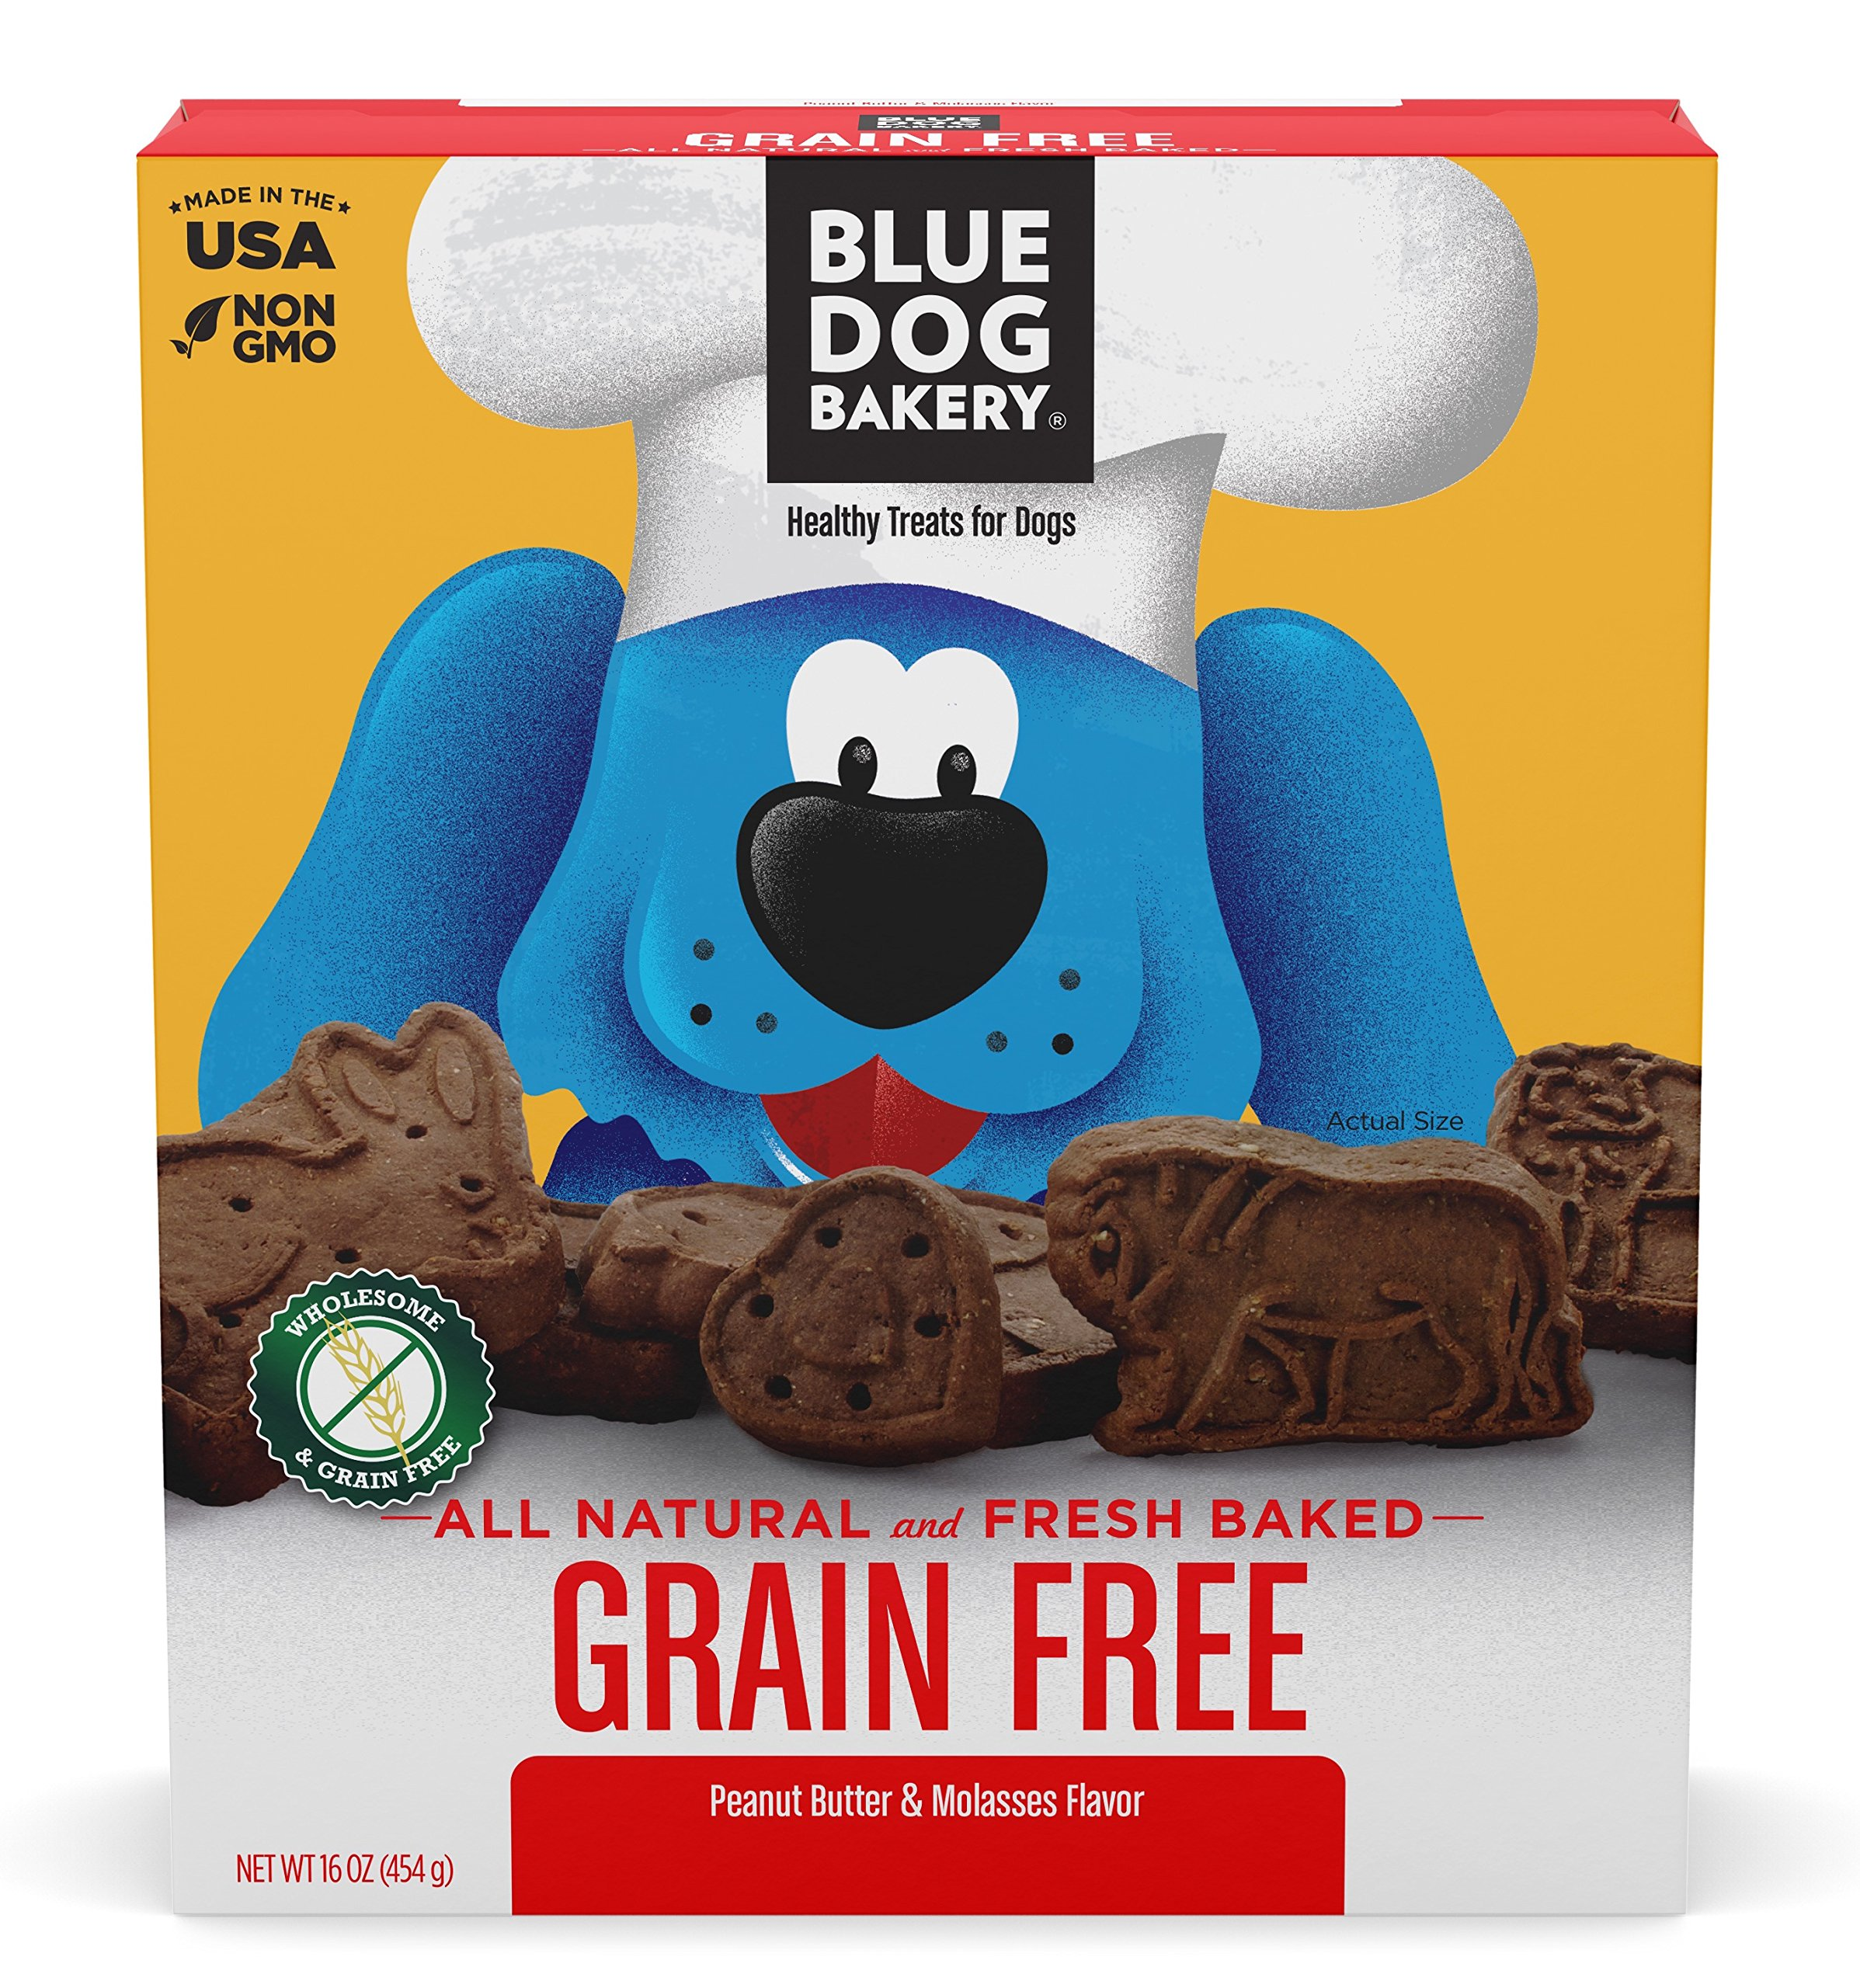 Blue Dog Bakery   Grain-Free Dog Biscuits   All-Natural   Peanut Butter & Molasses   16oz (Pack of 6) by Blue Dog Bakery (Image #2)